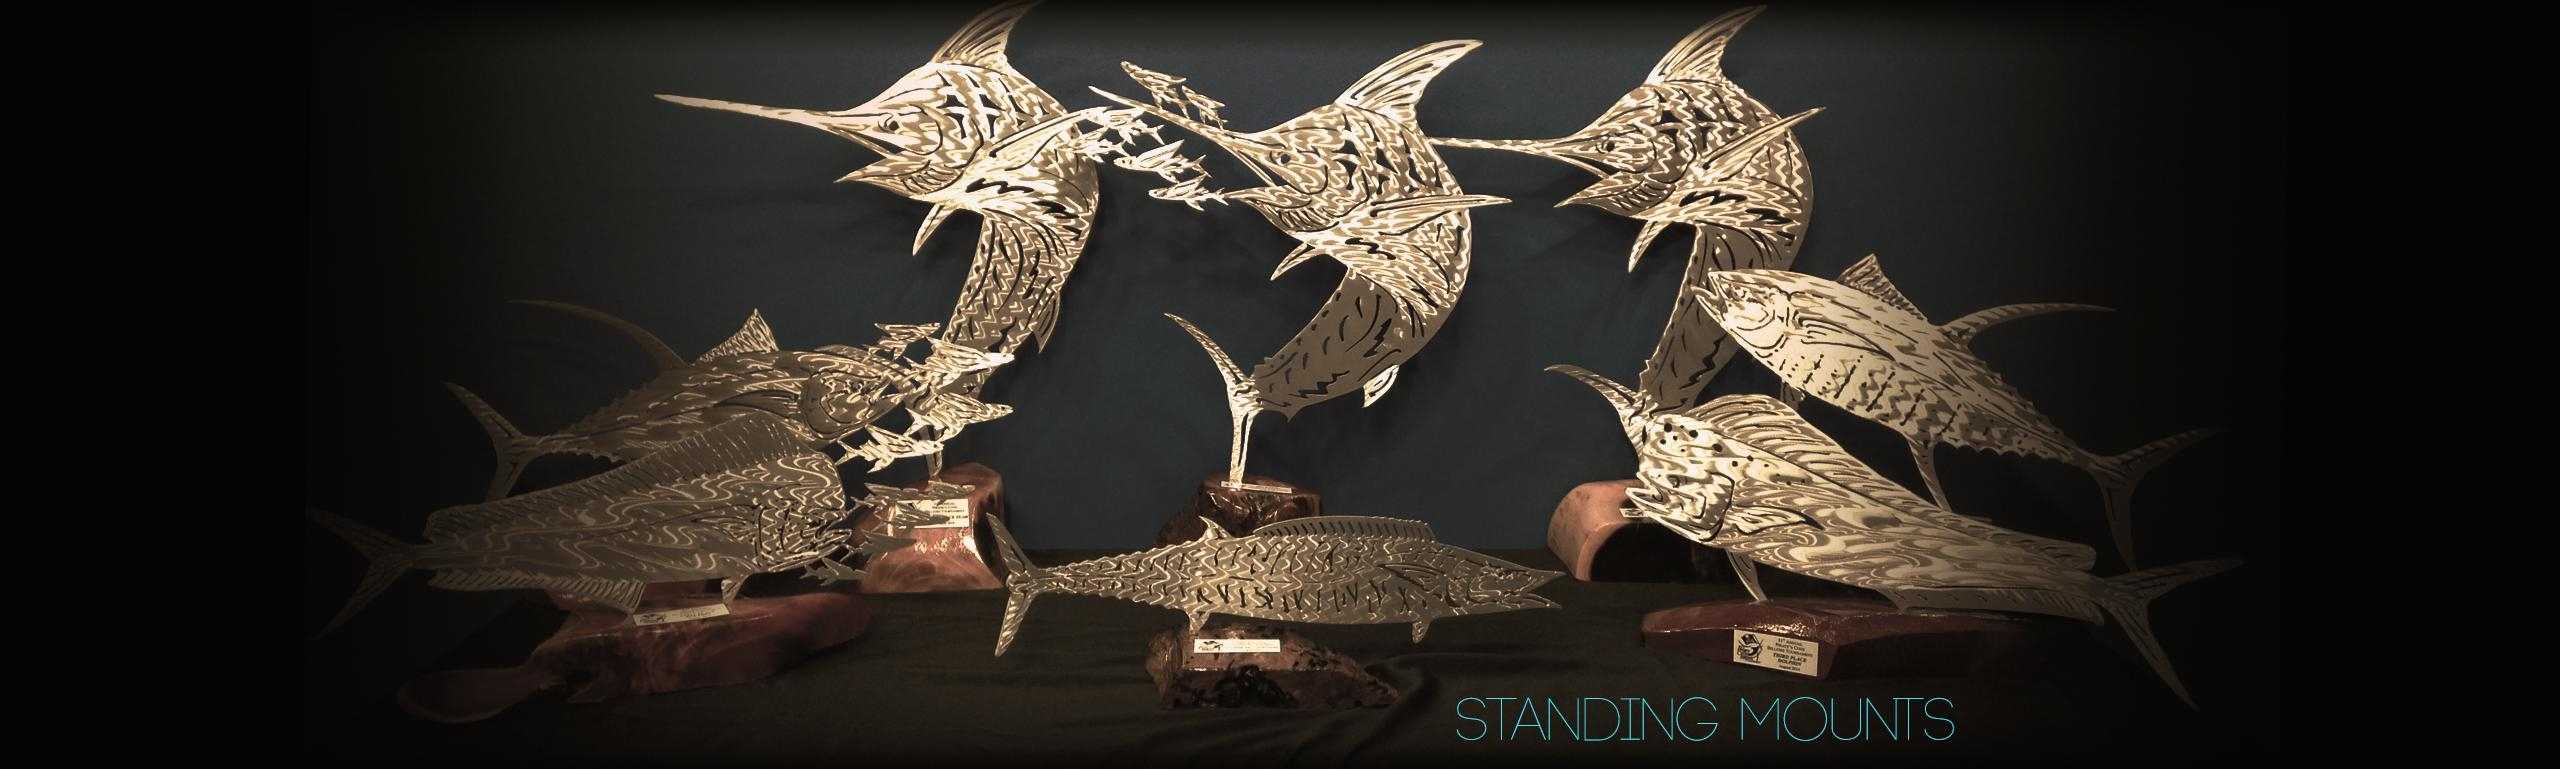 Fish Sculptures & Designs | Themetaledge With Regard To Fish Bone Wall Art (Image 15 of 20)